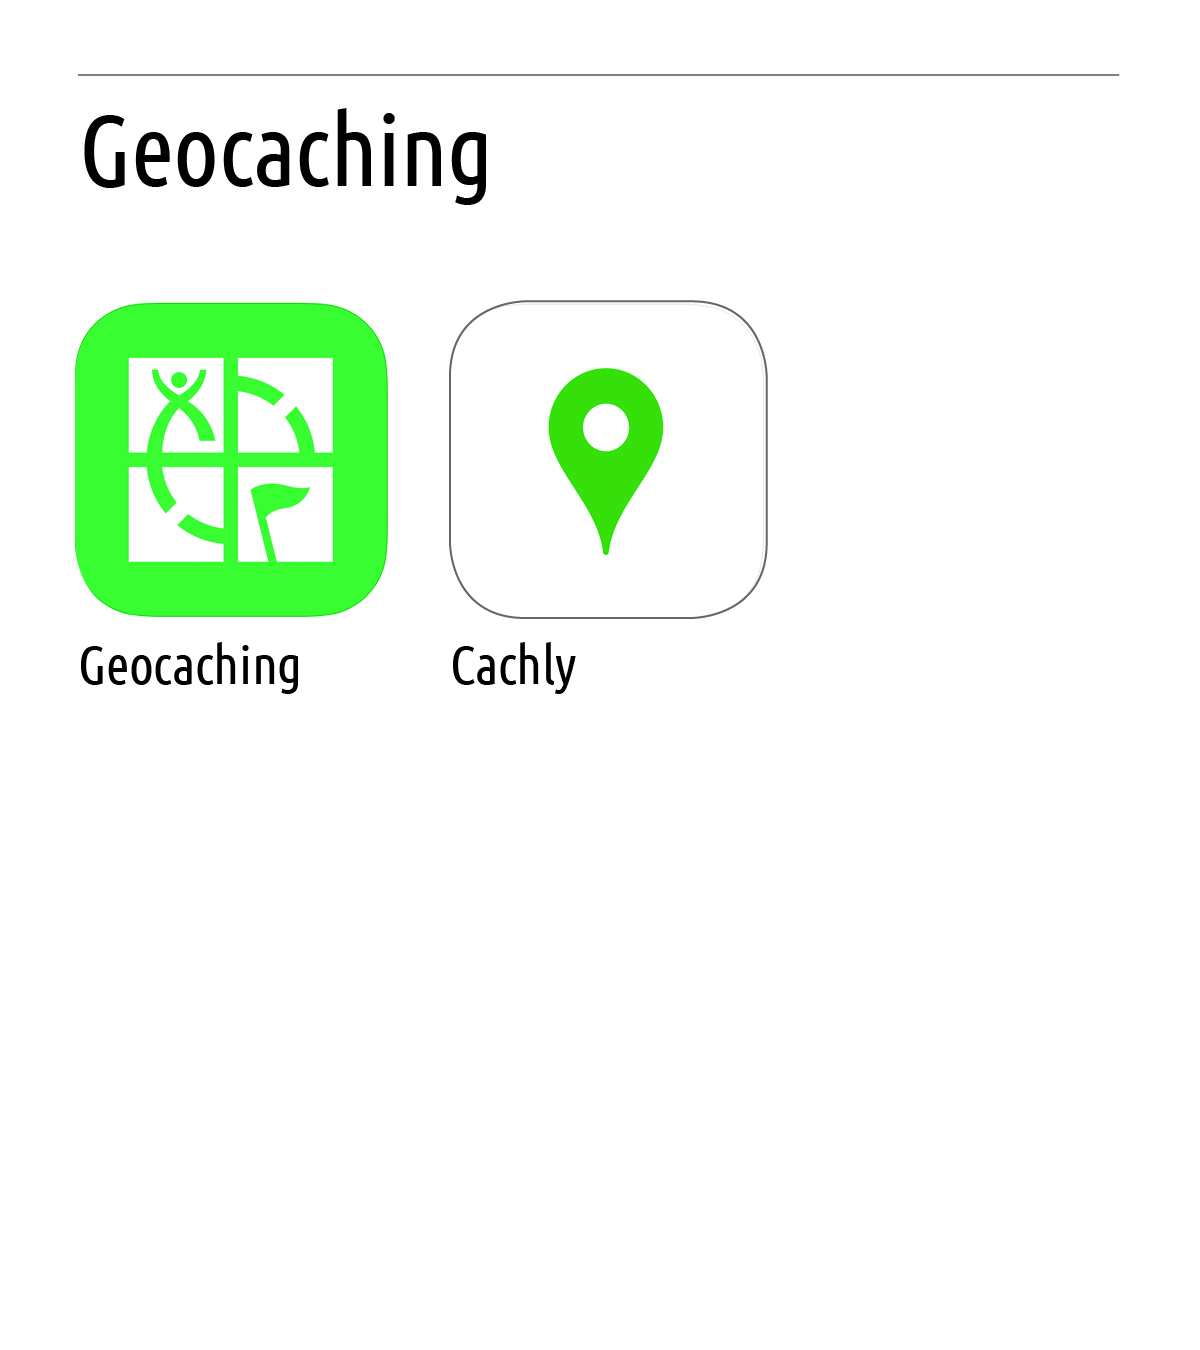 Greenbelt_Geocaching.jpg